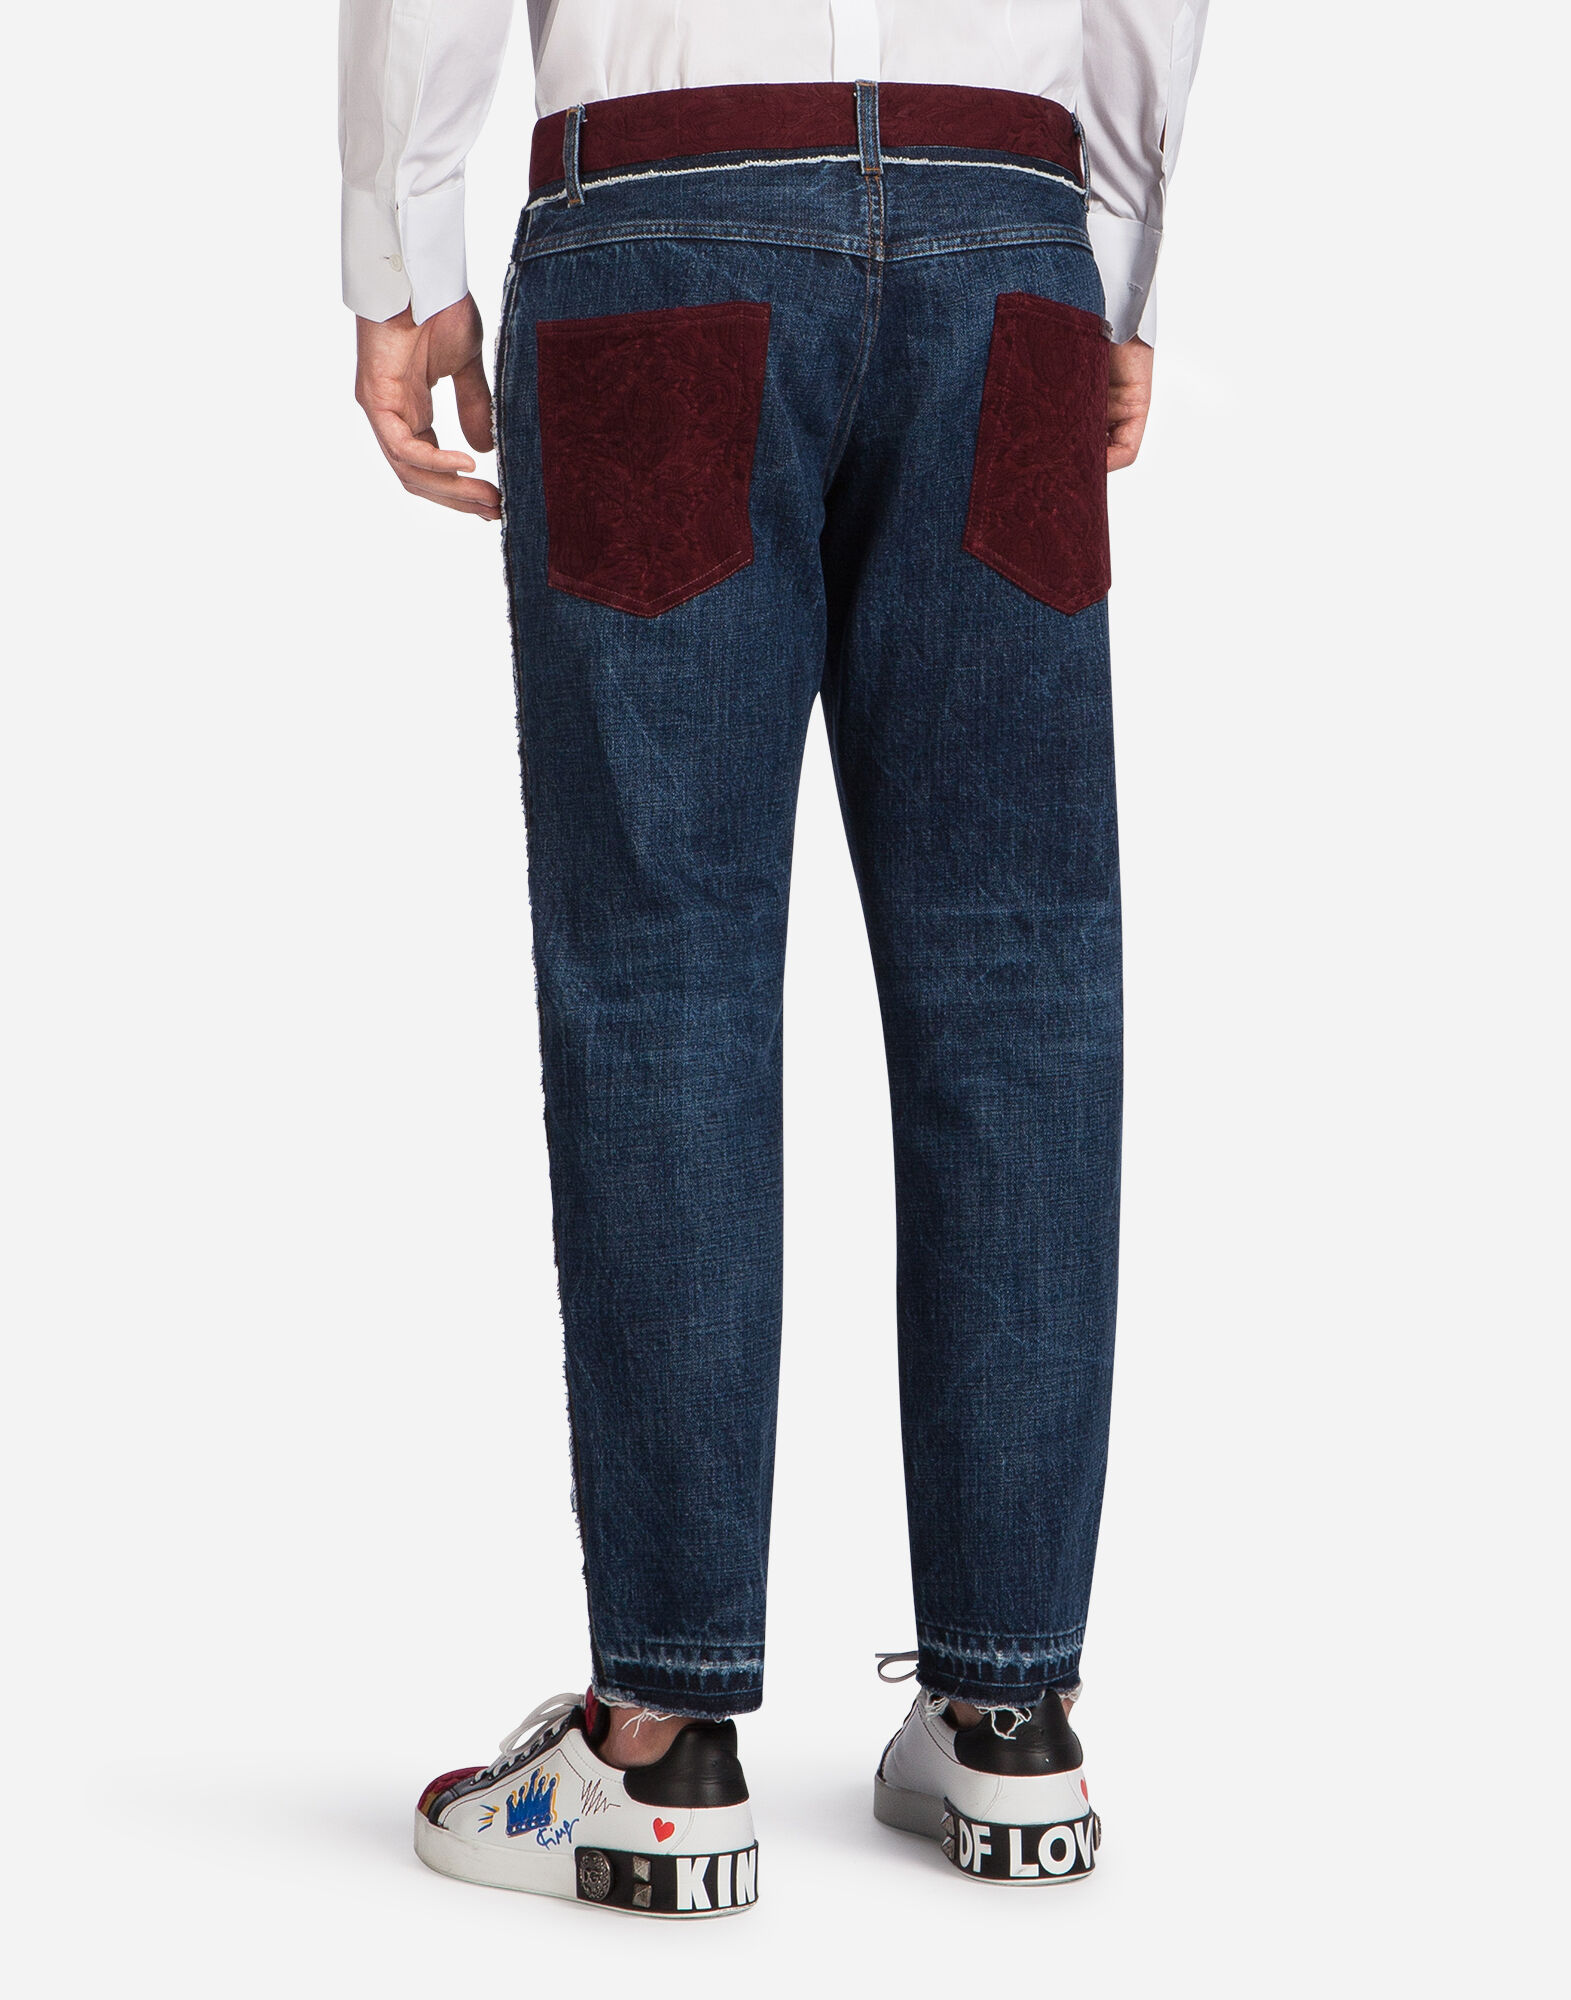 CLASSIC FIT JEANS WITH JACQUARD DETAIL